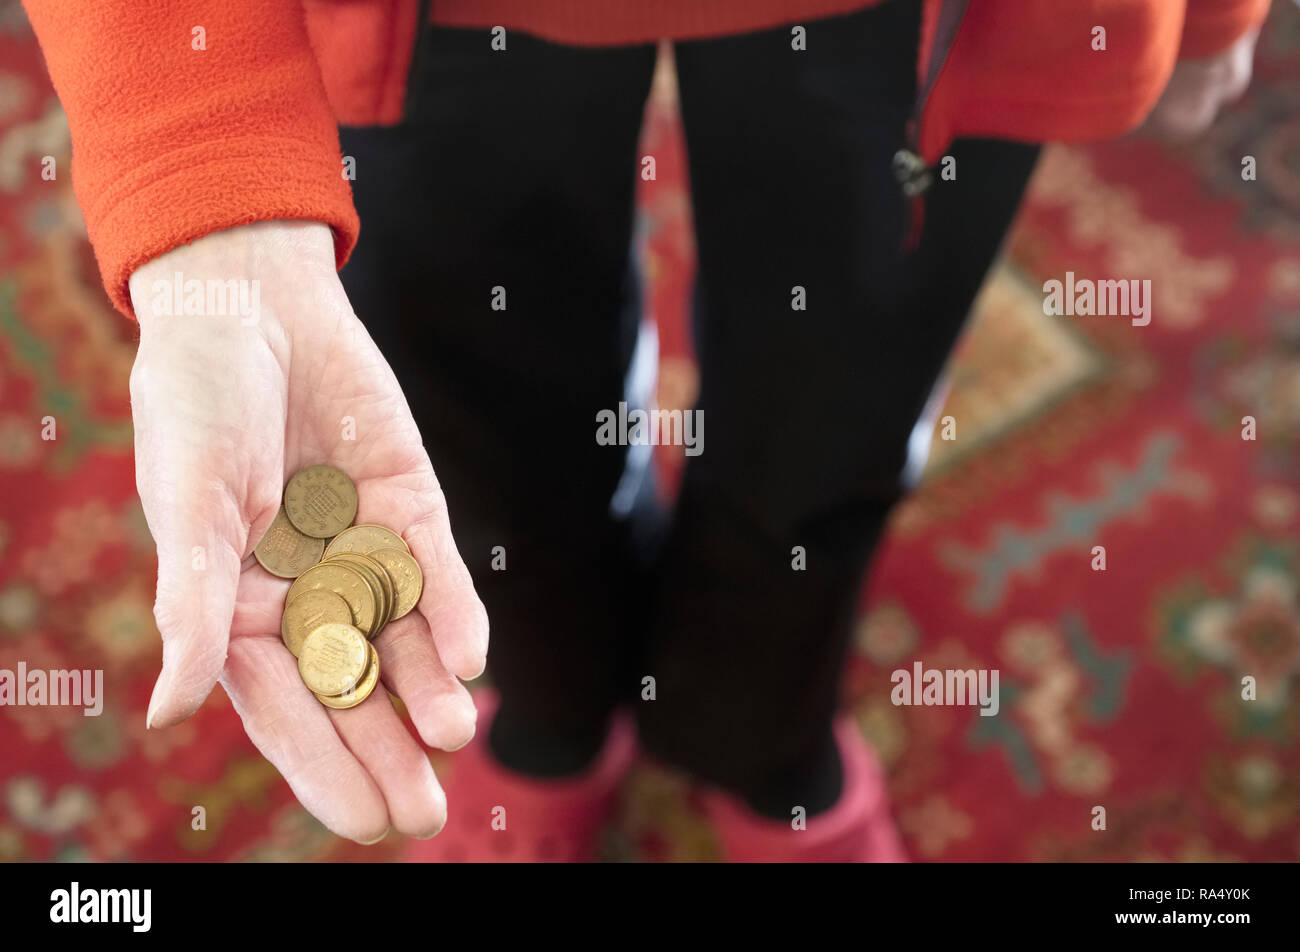 Elderly hand holding money cash loose change coins pence copper pension savings - Stock Image